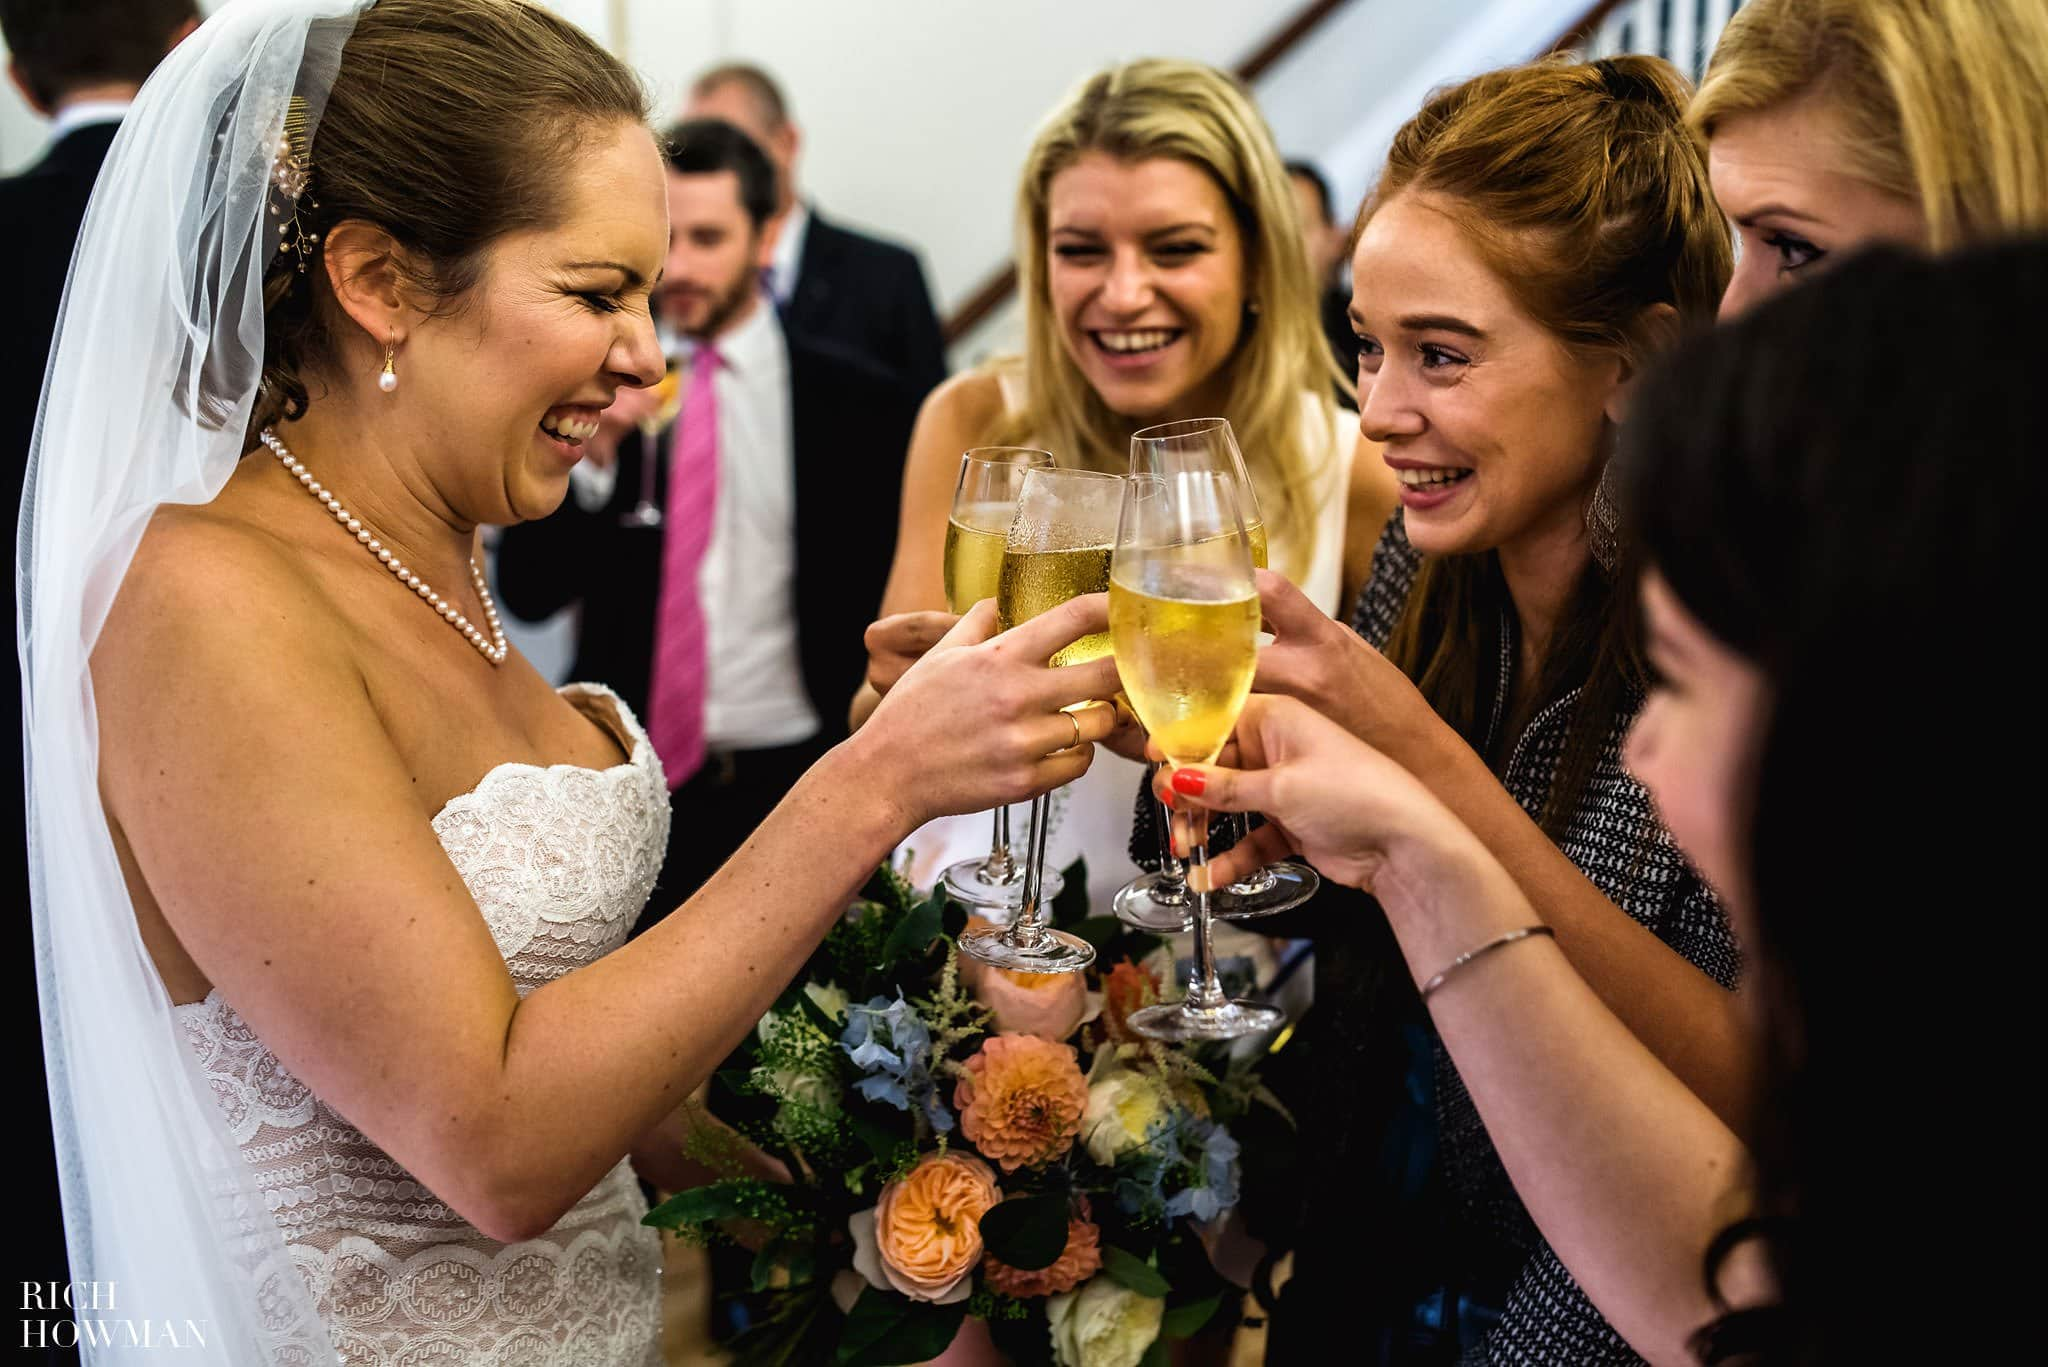 The brides friends share a glass of champagne with excited faces.